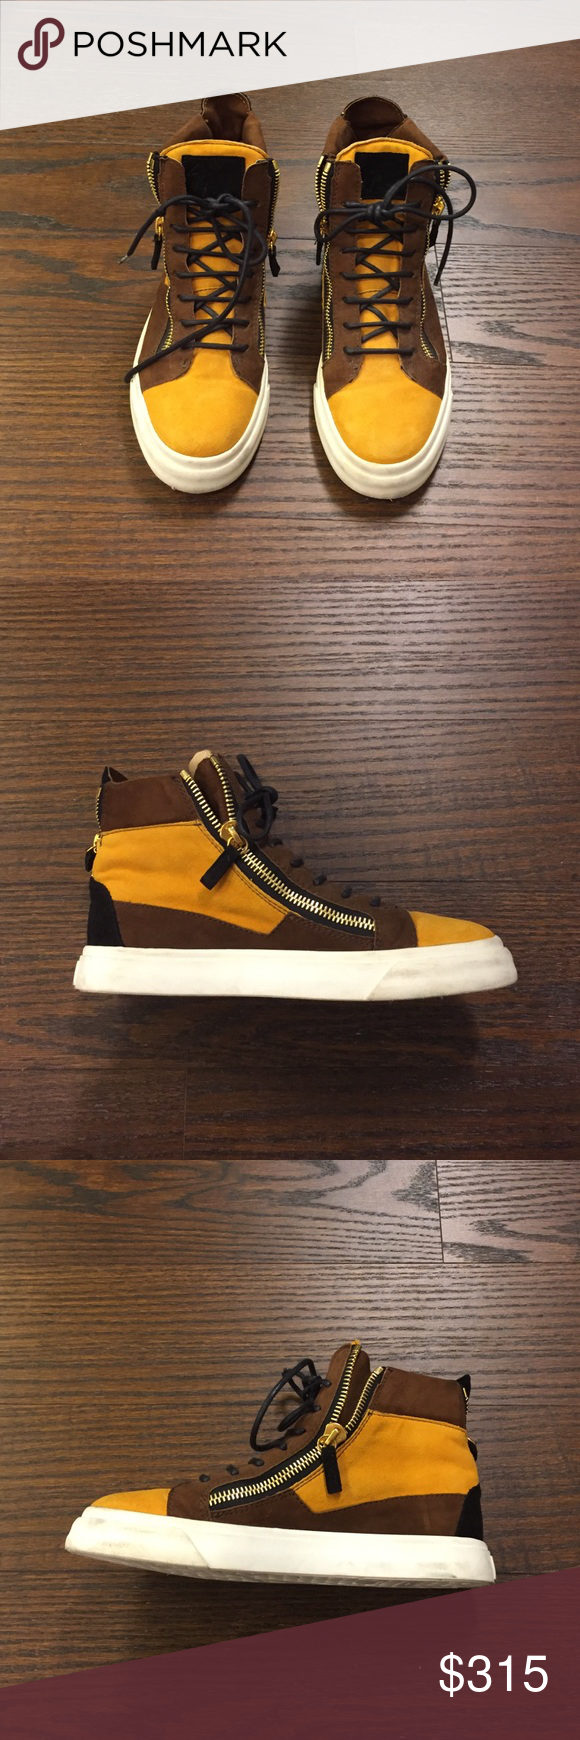 Giuseppe Zanotti High tops size 38 Original Giuseppe Zanotti high tops, size 38, barely worn, mustard yellow and brown with black details and gold zippers along sides and back Giuseppe Zanotti Shoes Sneakers